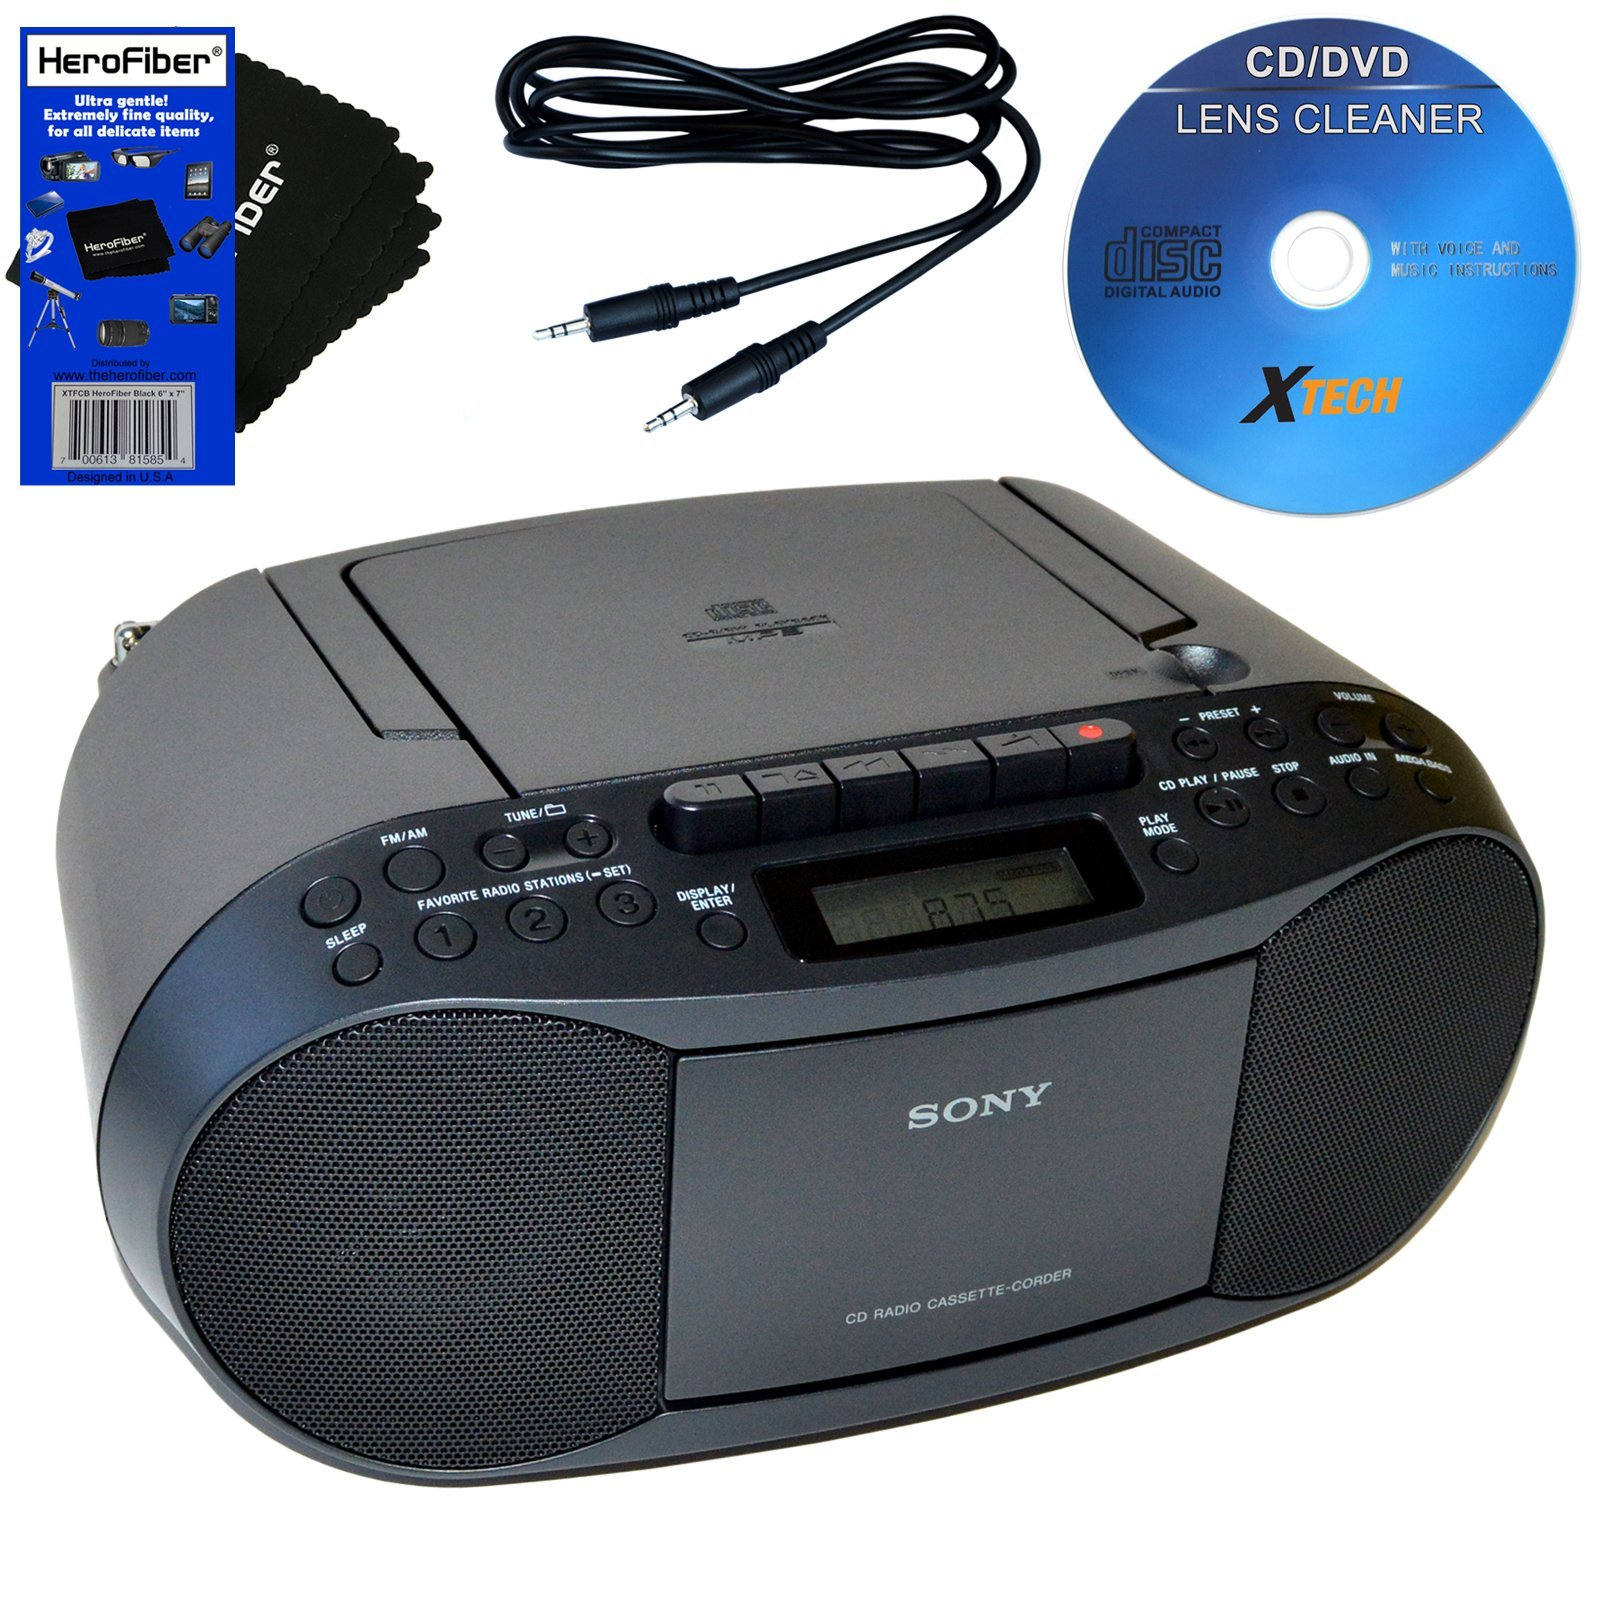 Sony CD Radio Cassette Recorder Bundled with AC Power Auxiliary Cable for iPods, iPhones, Smartphones, MP3 Players, Xtech CD Lens Cleaner & HeroFiber Ultra Gentle Cleaning Cloth by Sony